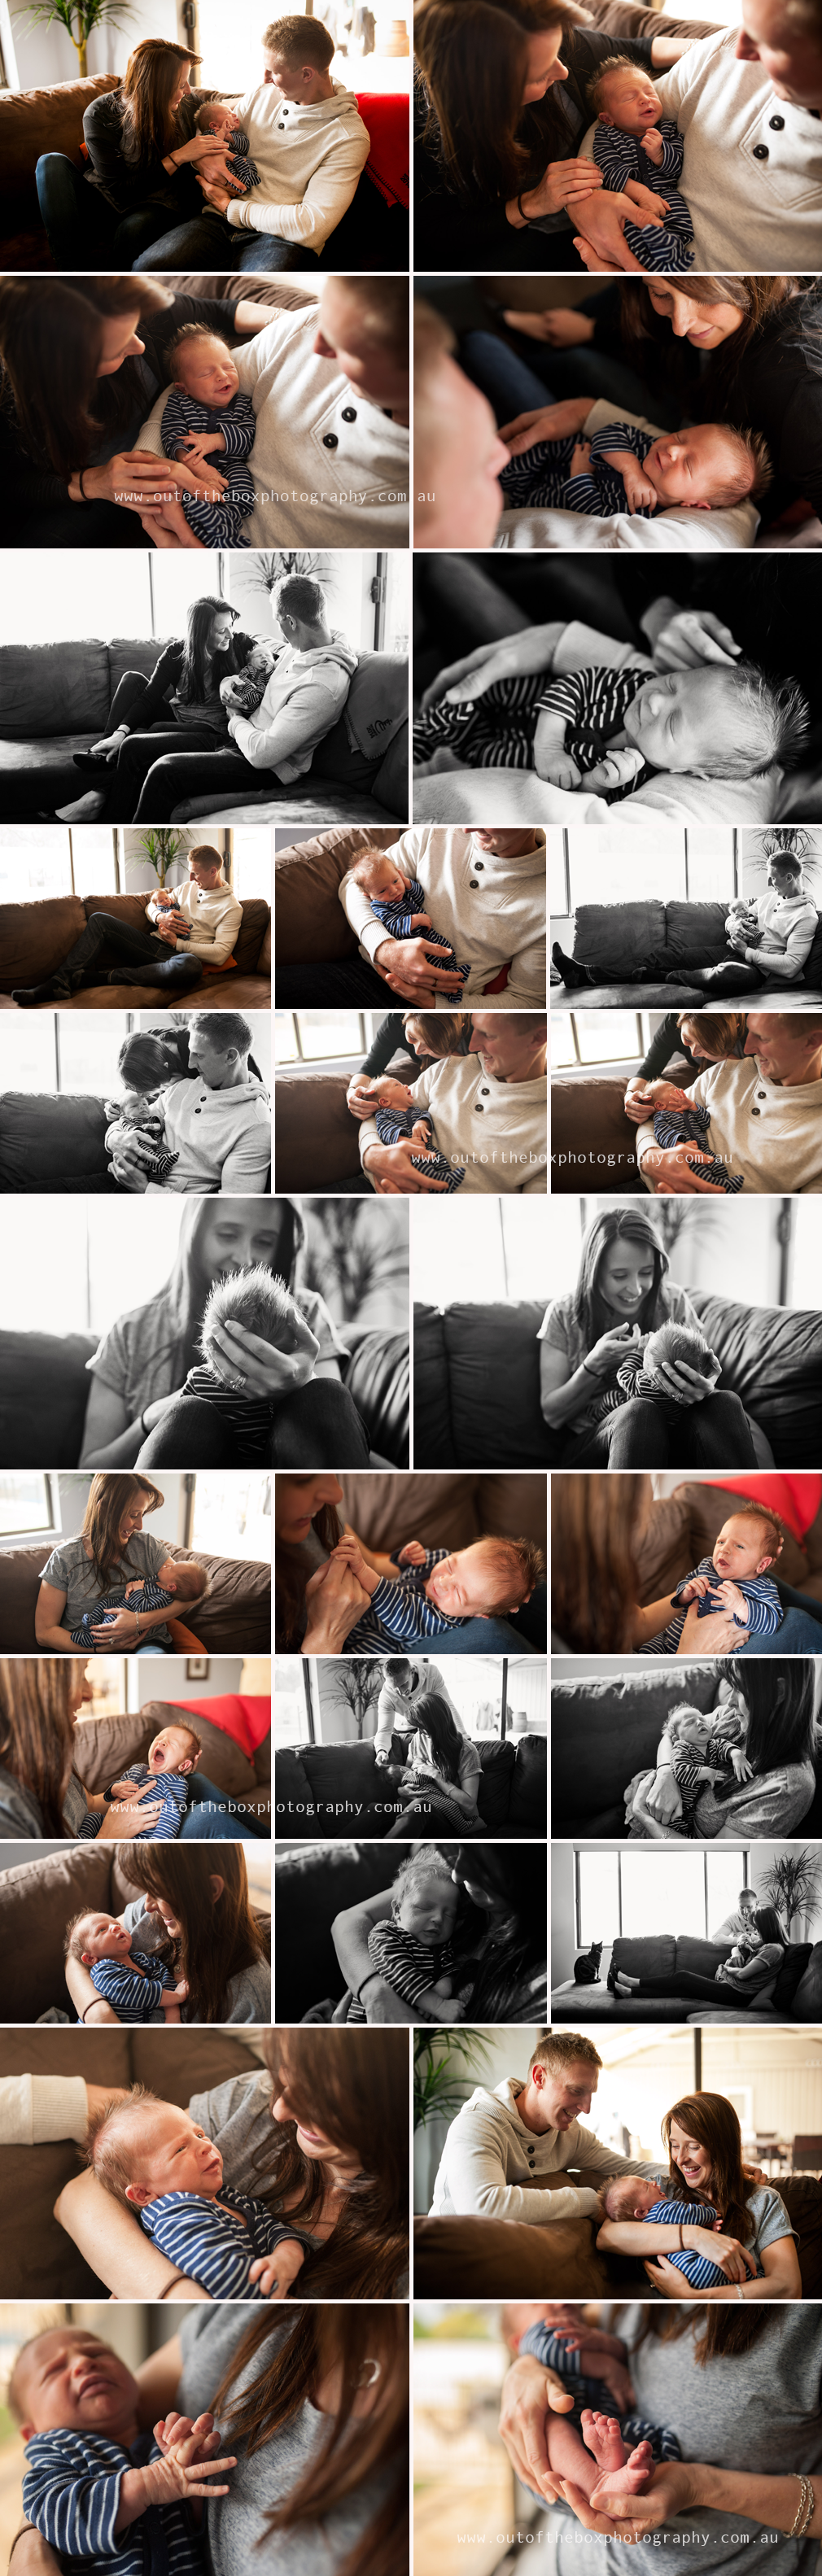 mcwaters-newborn-family-photography-1